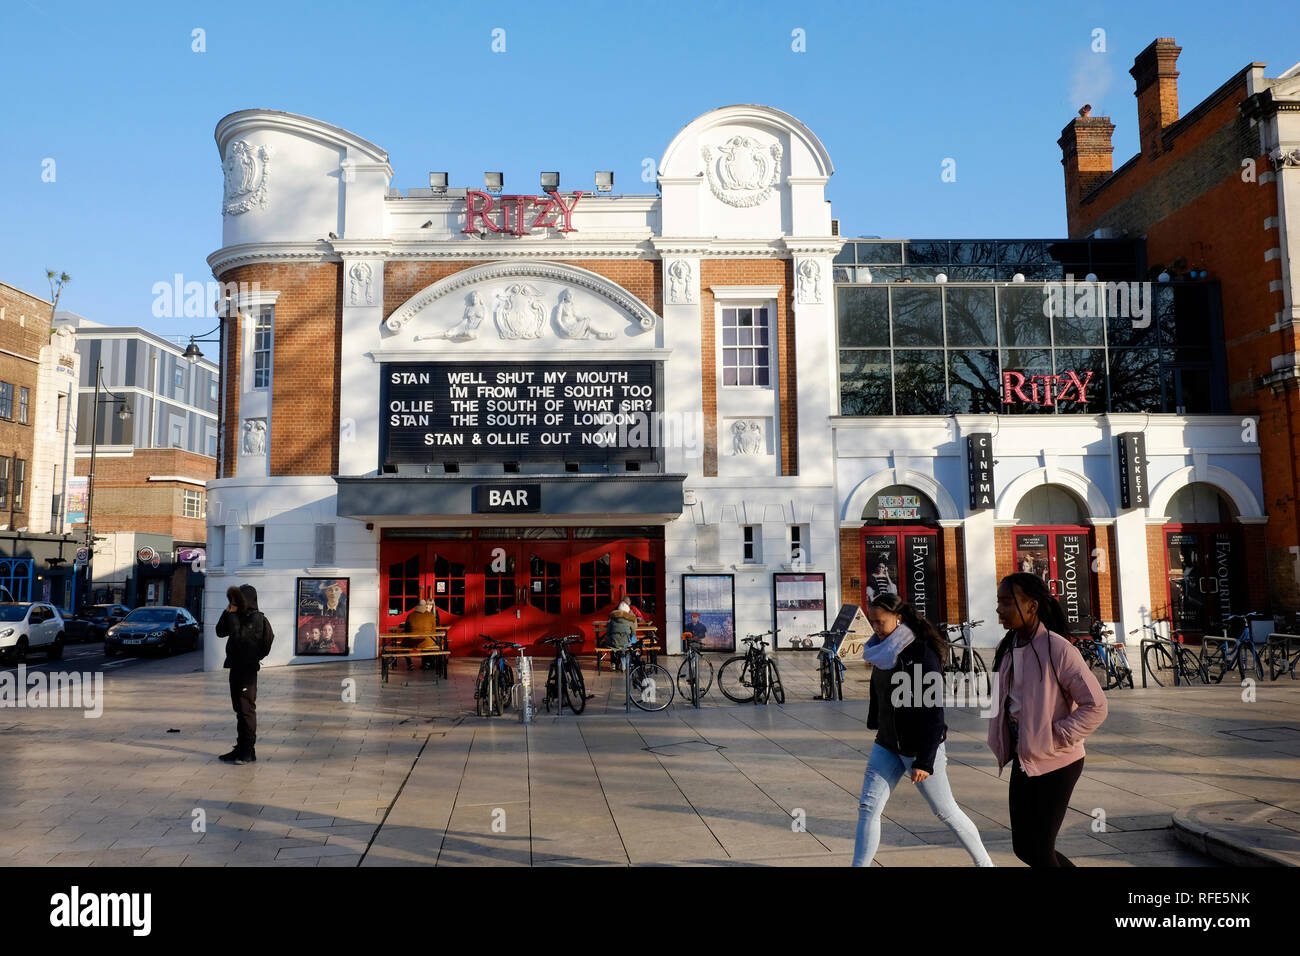 A general view of Ritzy cinema in Brixton, London - Stock Image